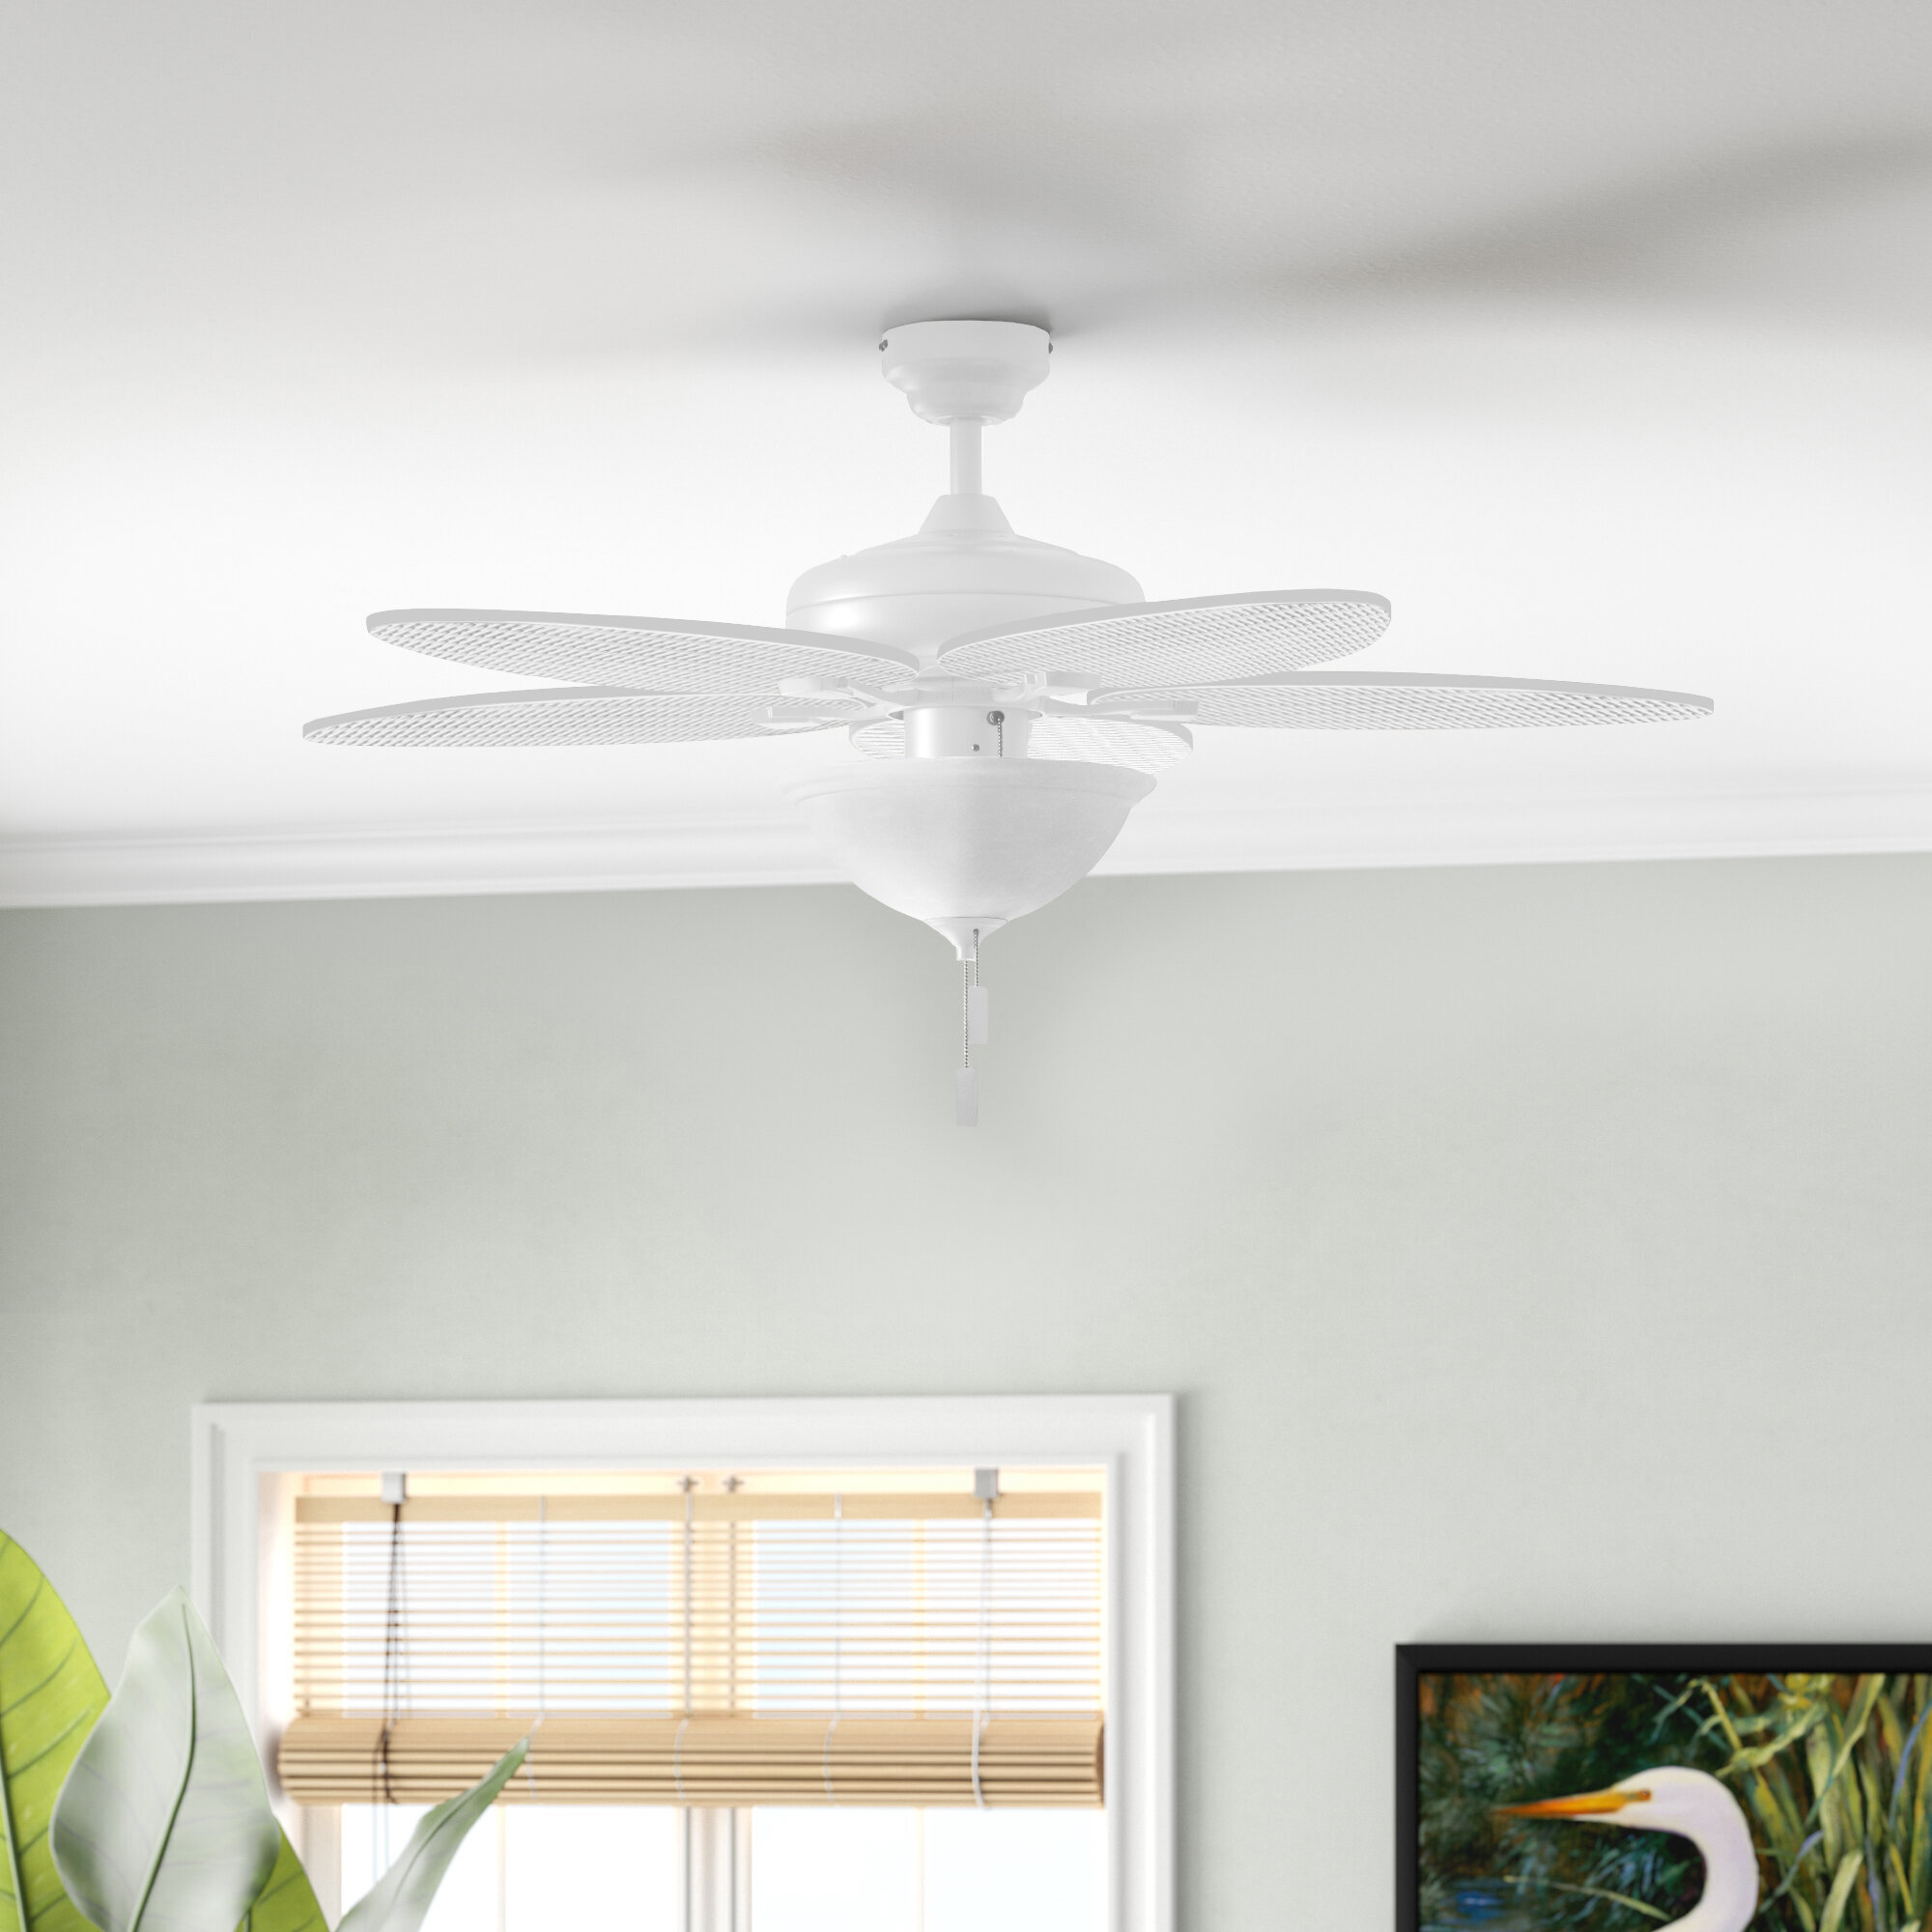 Bay Isle Home 52 Mccall 5 Blade Leaf Blade Ceiling Fan With Pull Chain And Light Kit Included Reviews Wayfair